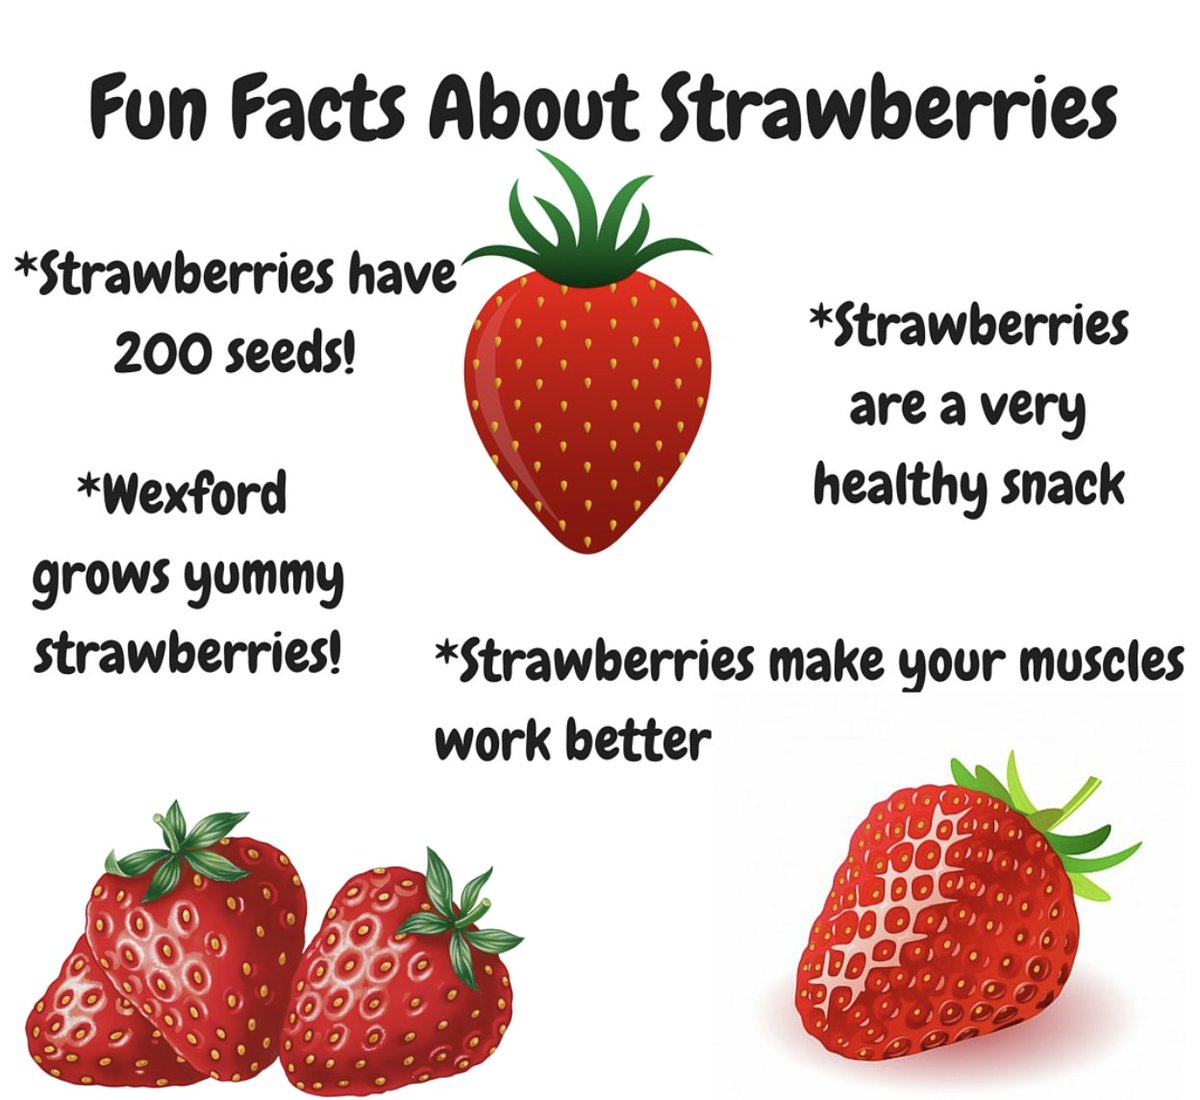 Did you know this about the humble Strawberry! https://t.co/ZZL4xlqYZP